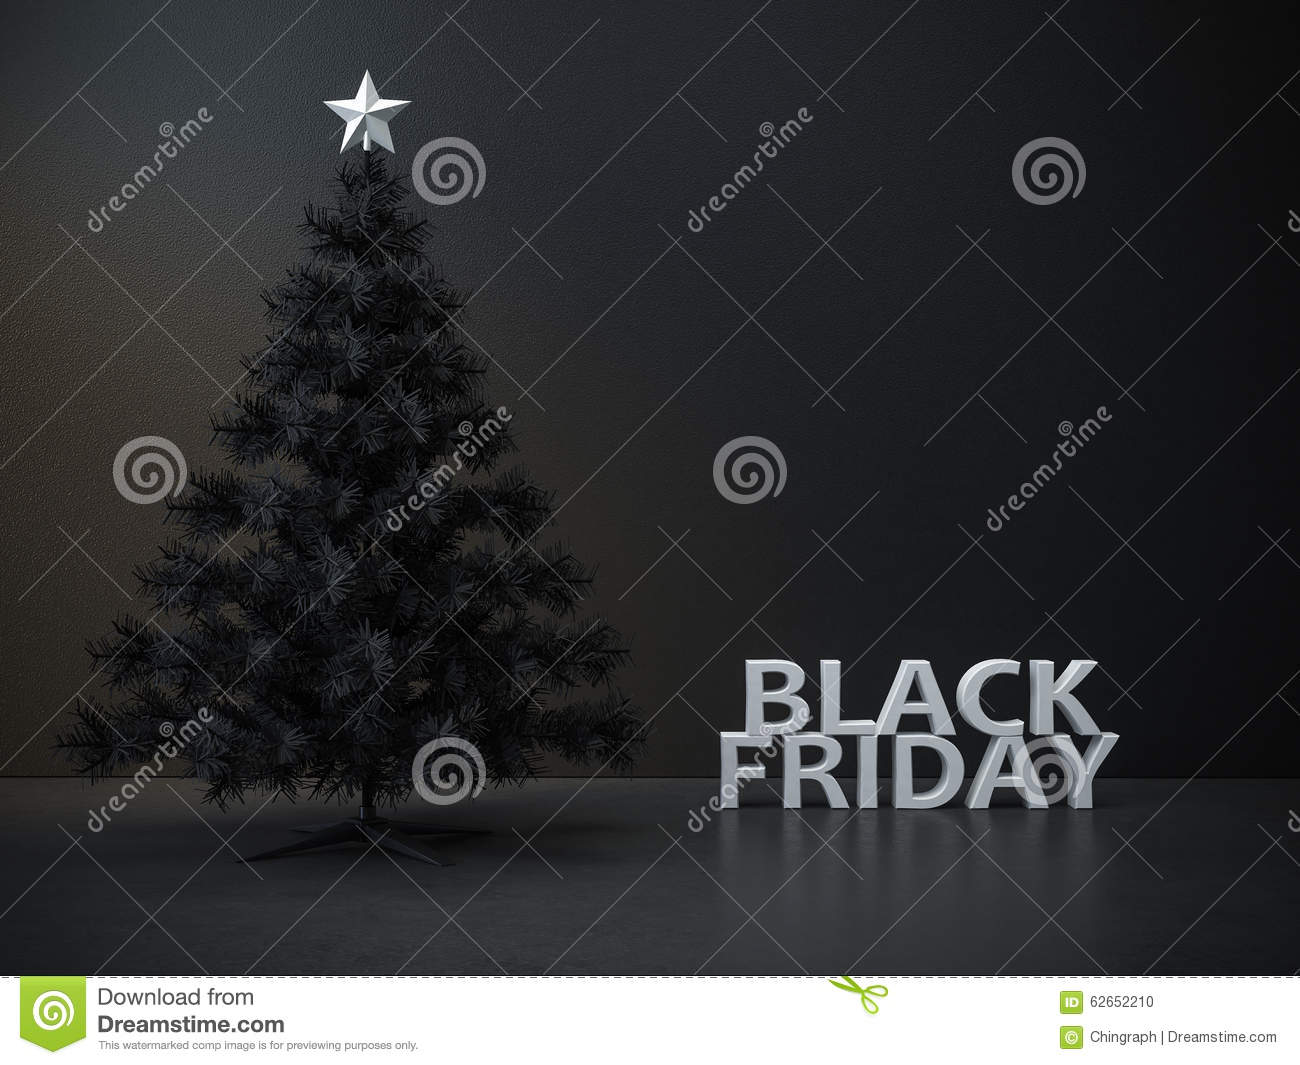 black friday christmas tree background - Christmas Tree Black Friday